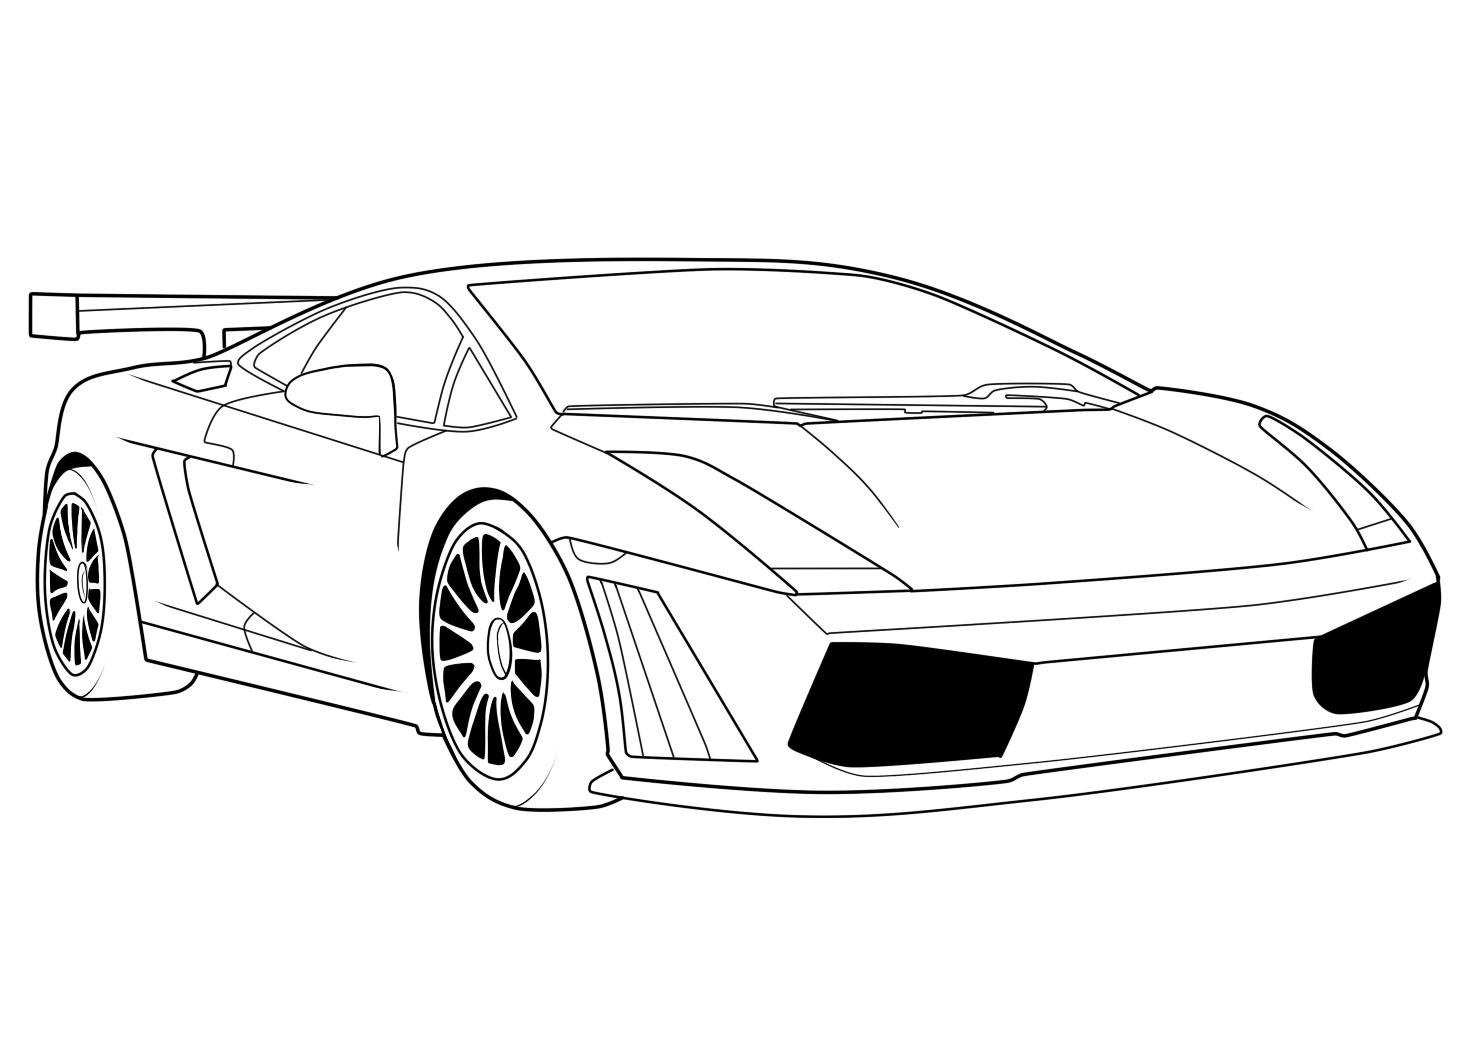 Coloring in the car - Lamborghini Car Coloring Pages